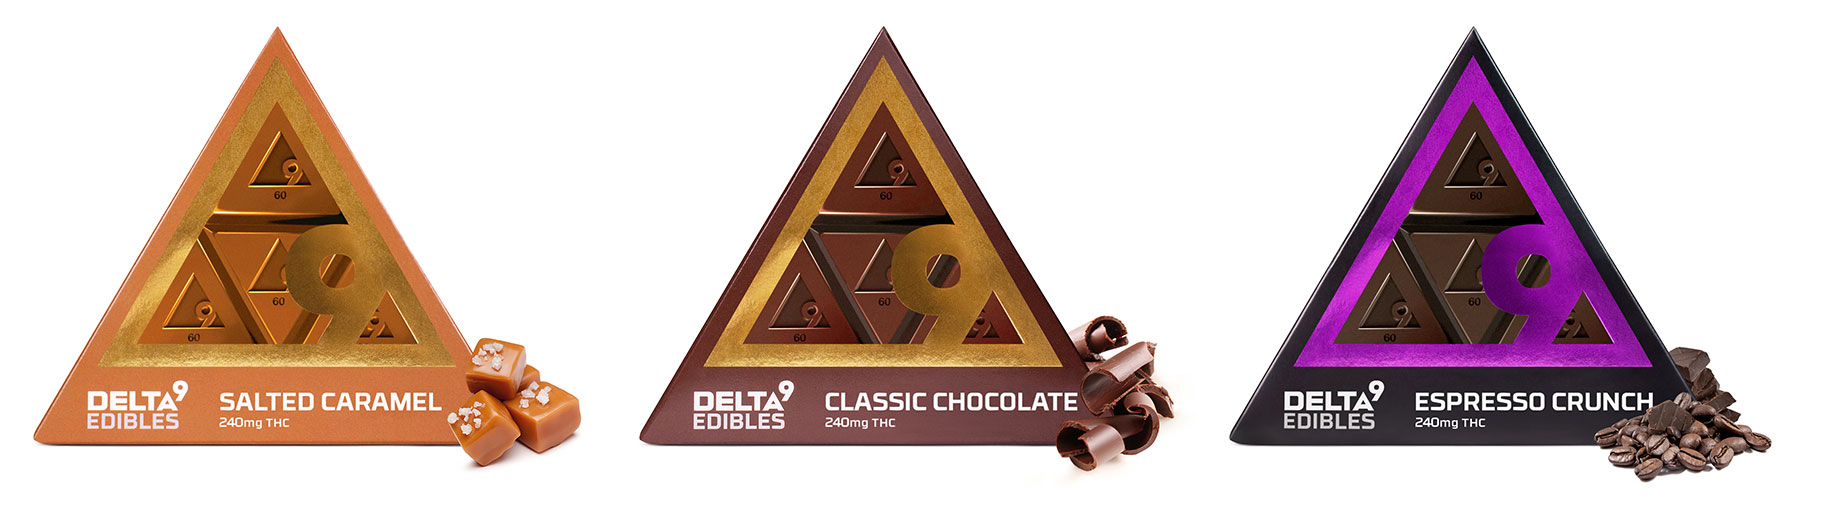 Delta9 Edible Package